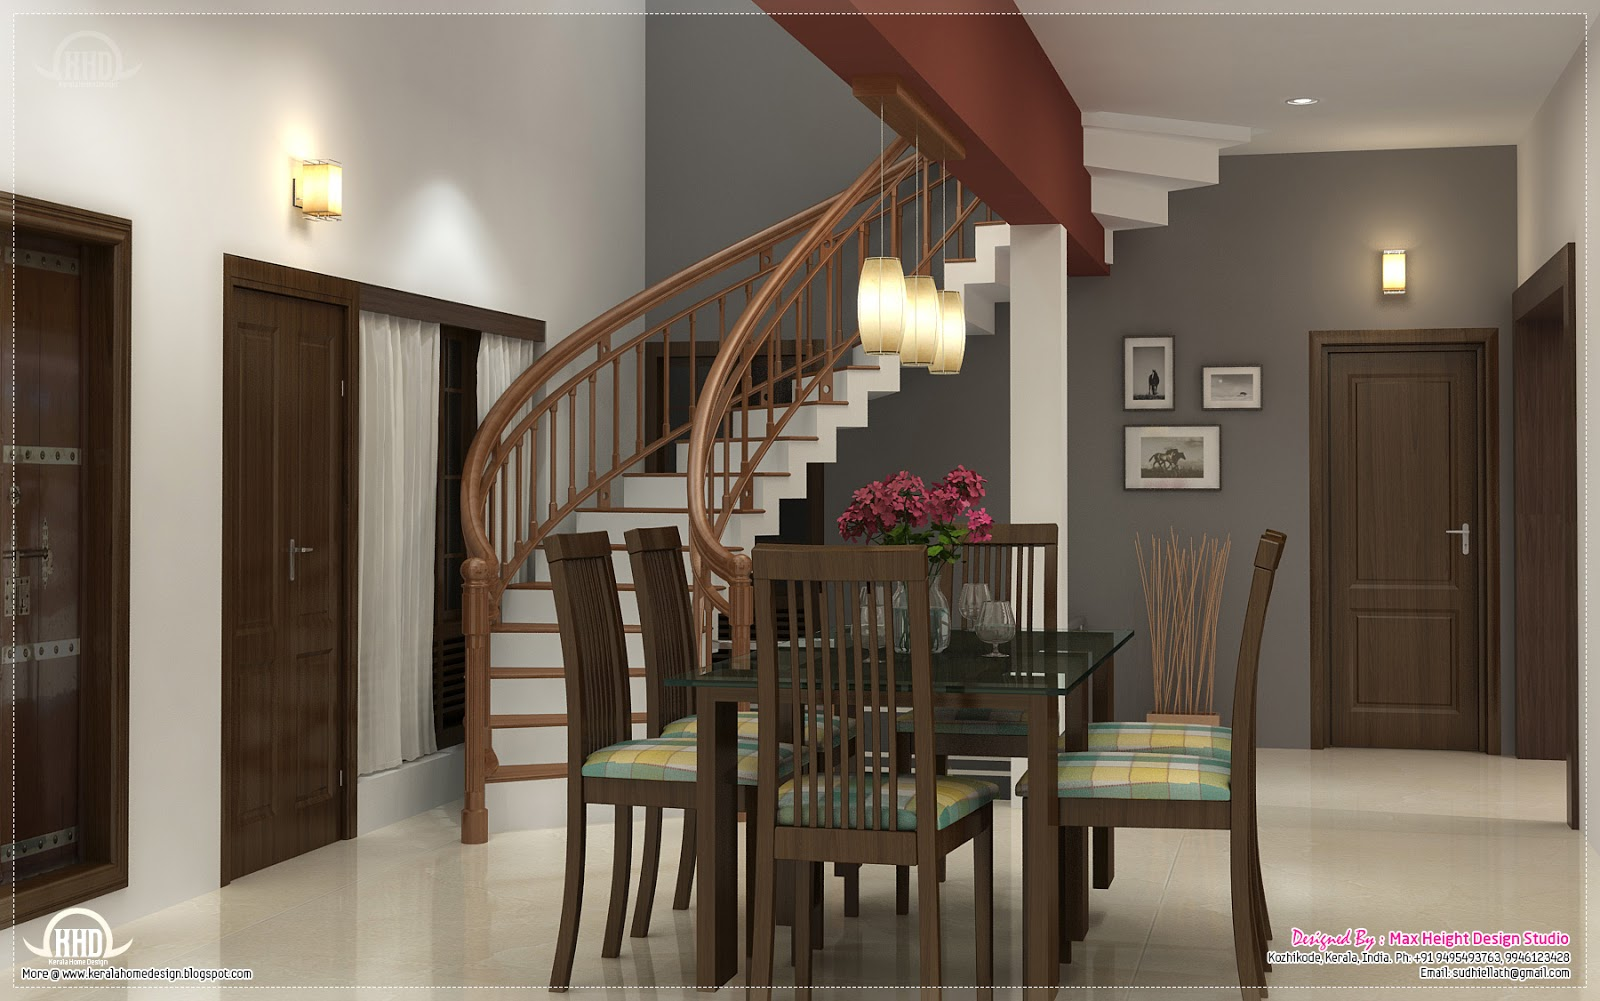 Home interior design ideas kerala home design and floor for Inside home design pictures